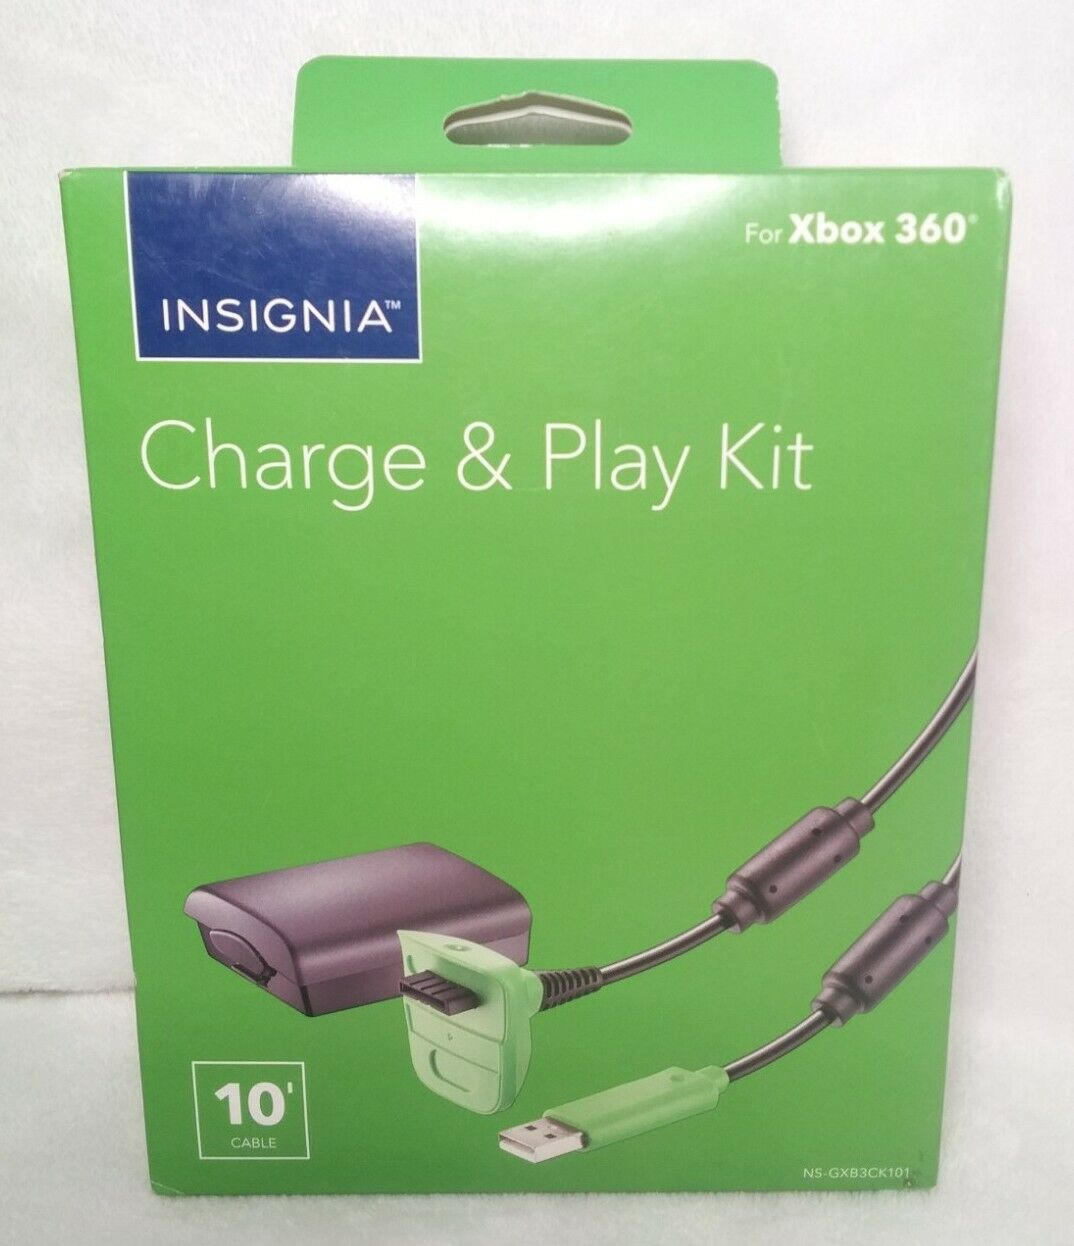 Xbox 360 Play Charge Kit 10f USB Controller Cable & 1200mAh Rechargeable Battery